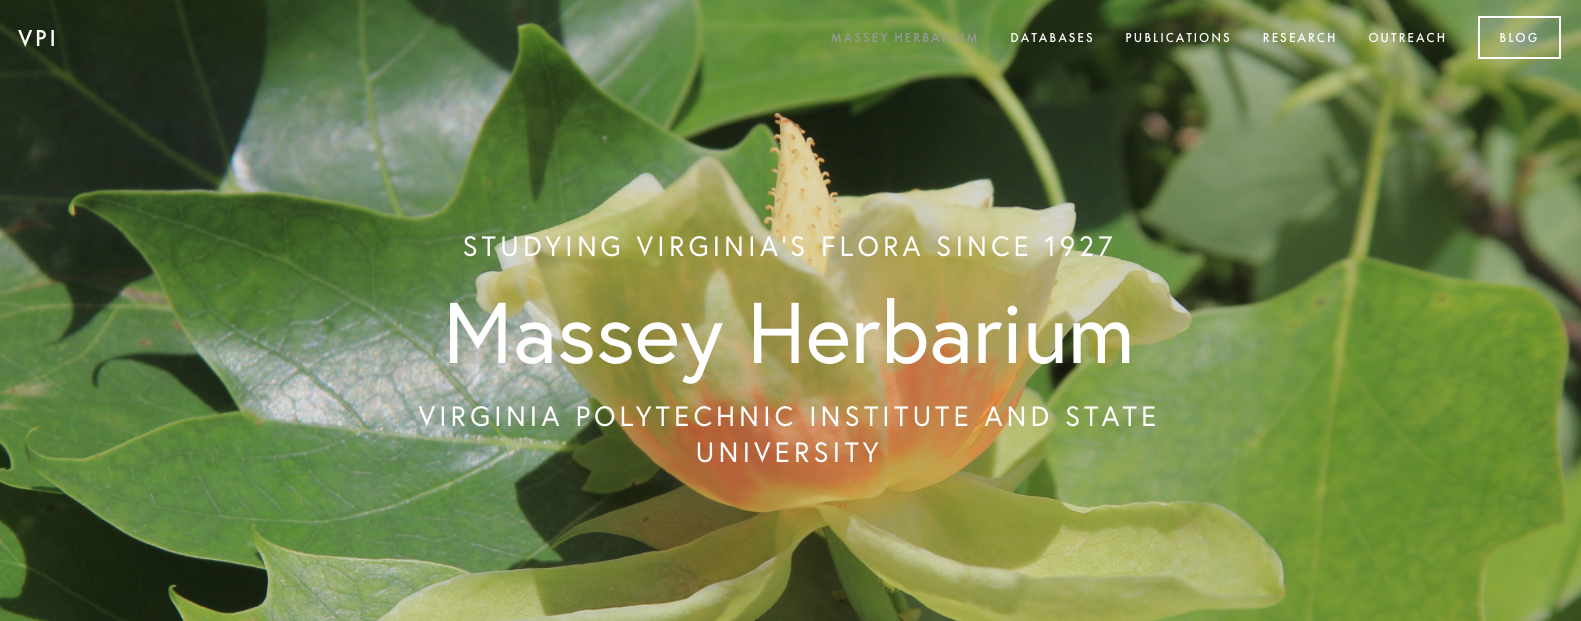 Take a look at the Massey Herbarium's new website!